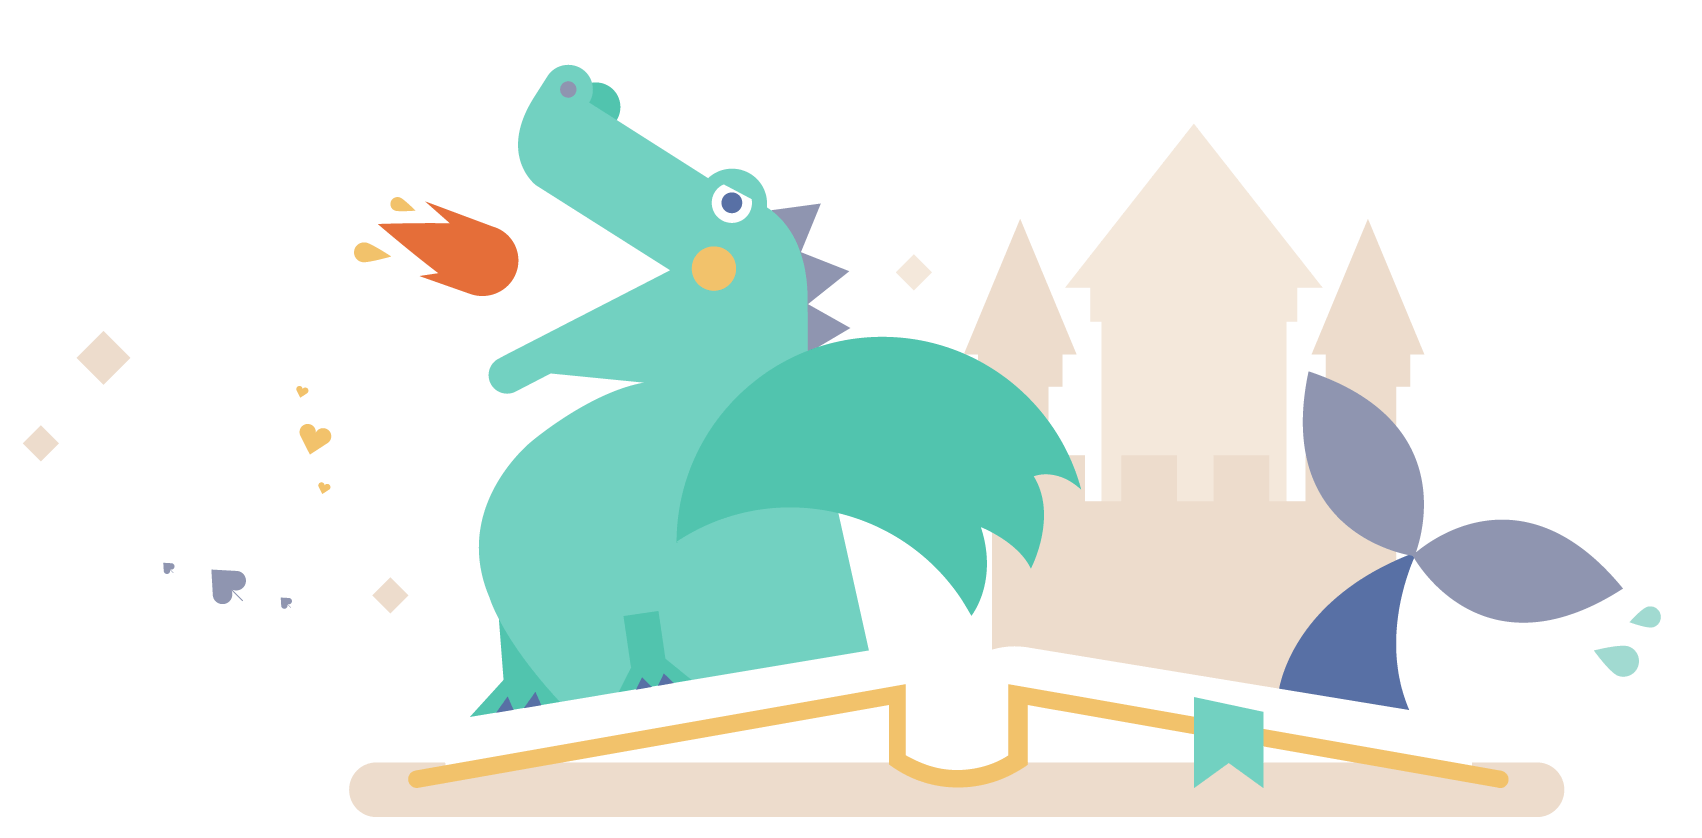 Illustrtion of a book of tales with a dragon and a castle